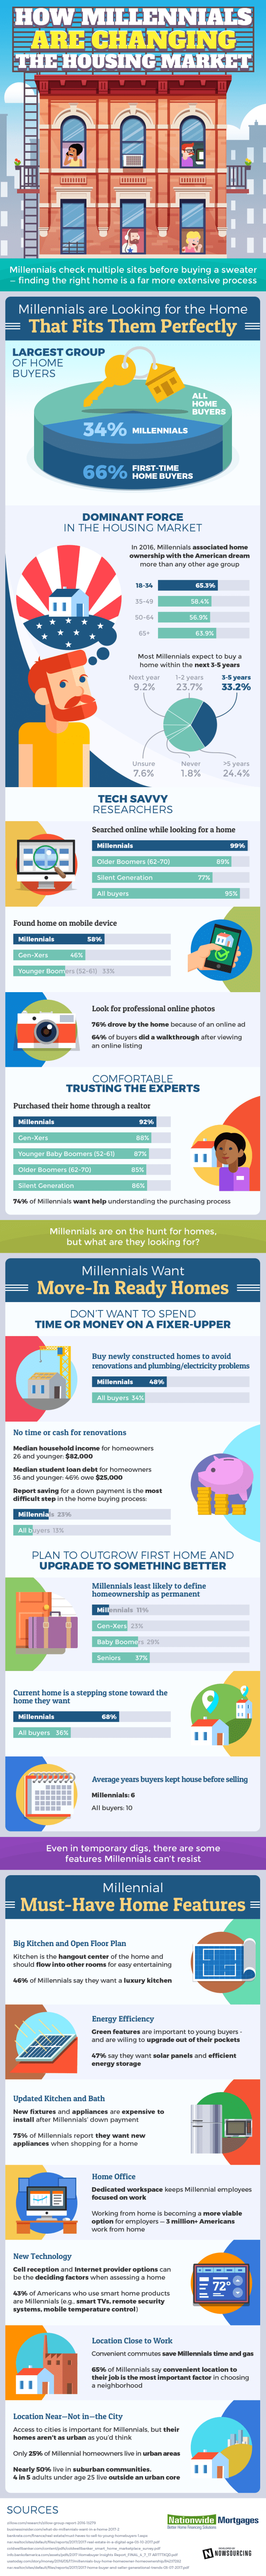 How Millennials Are Changing the Housing Market